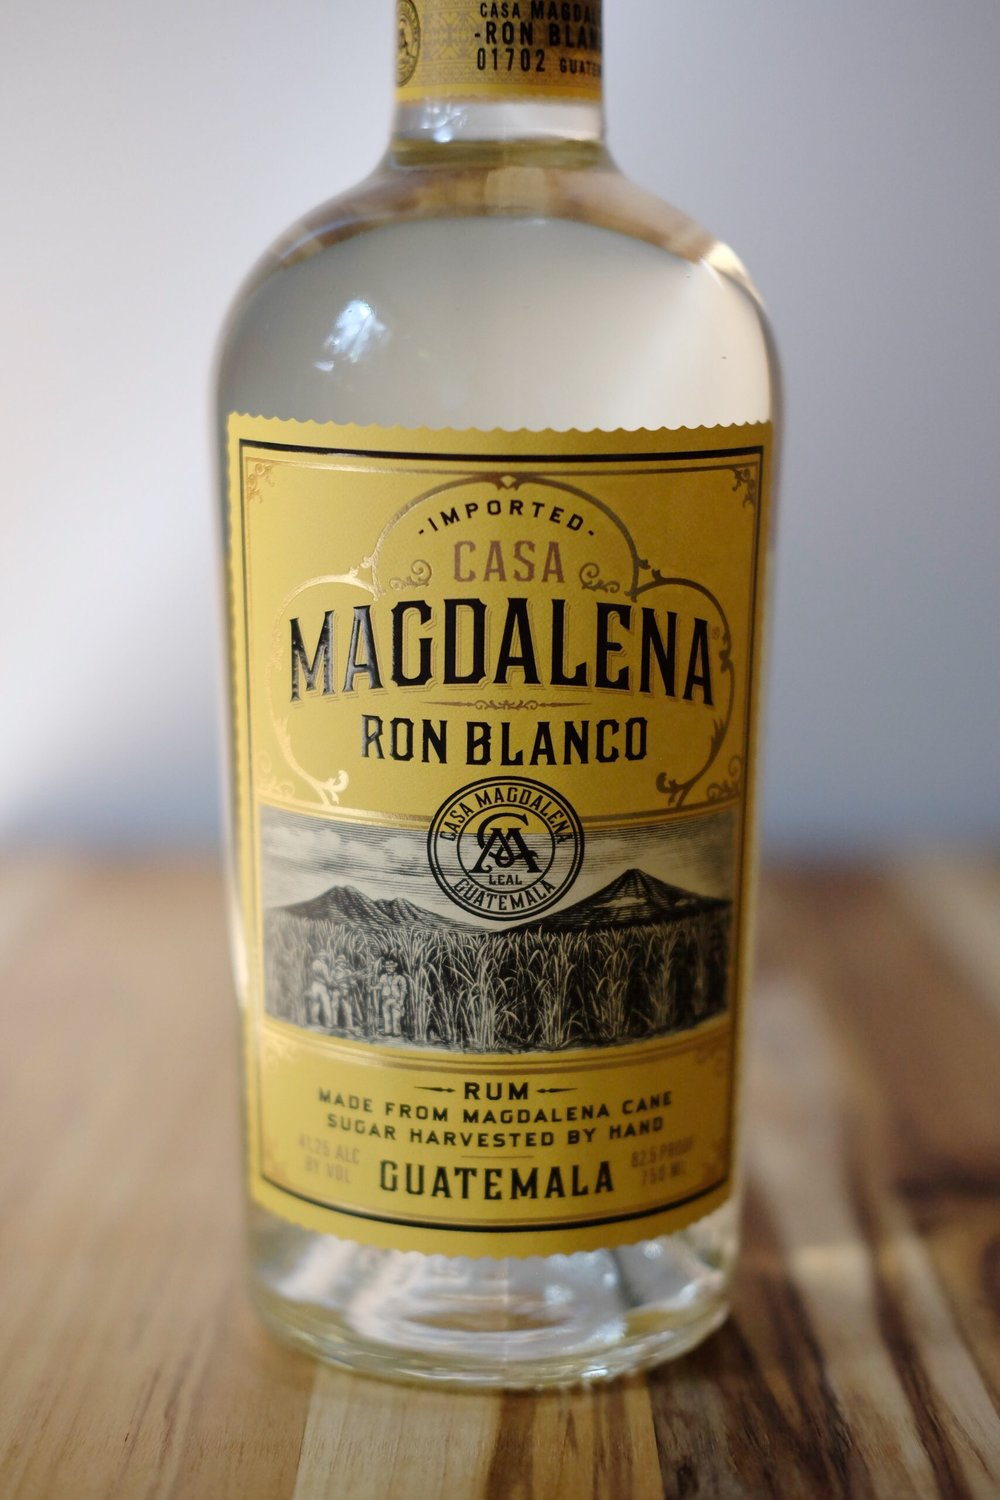 Magdalena Rum - AGE: unagedCOST: $19ABV: 41DEFINING FLAVORS: Sweet & Grassy